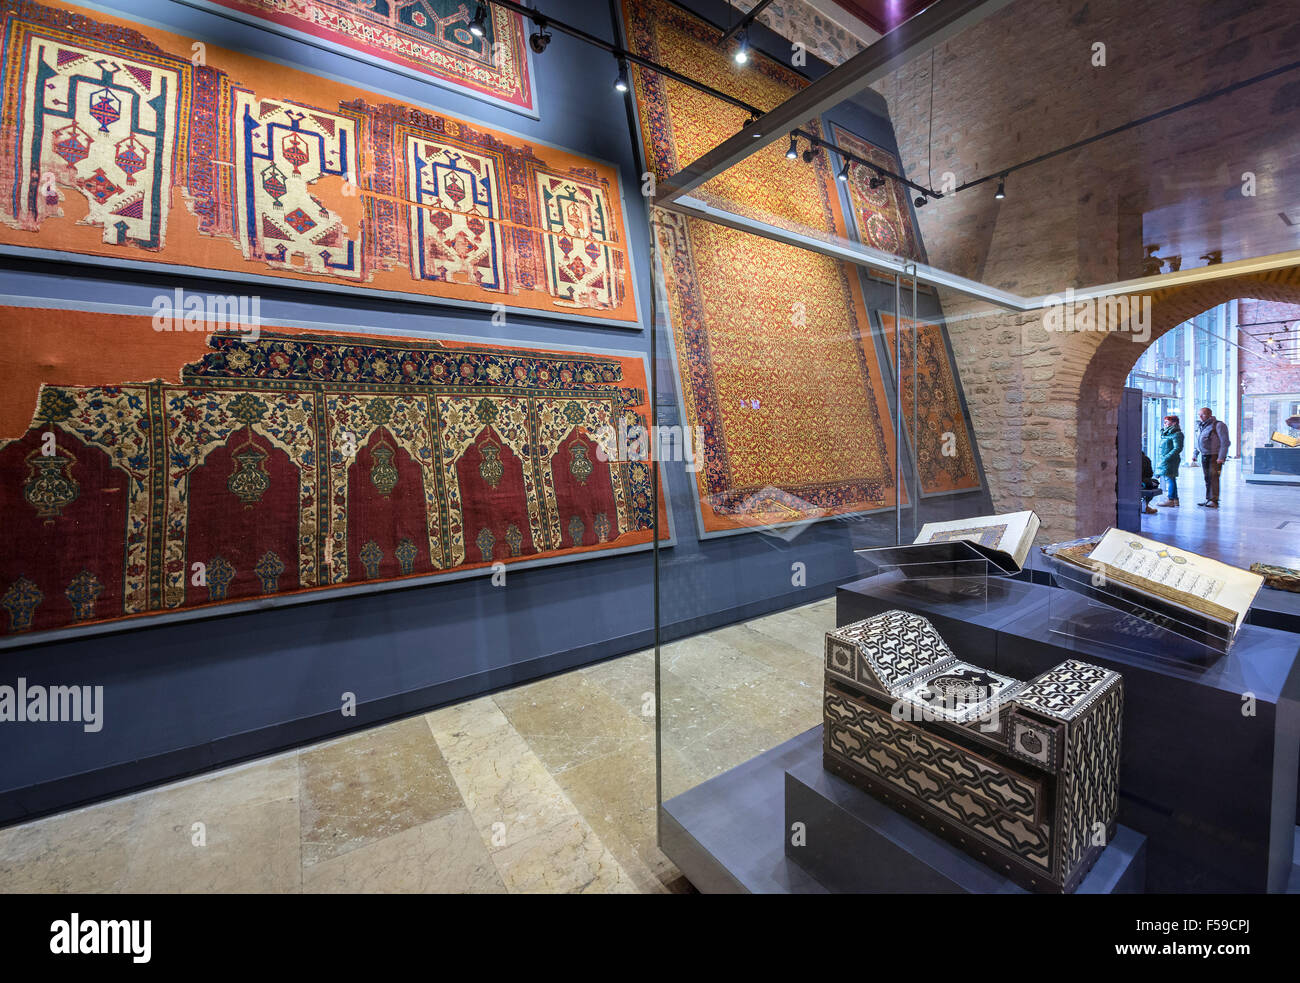 Prayer Rugs And Furniture In The Museum Of Turkish And Islamic Arts,  Hippodrome, Sultanahmet, Istanbul, Turkey.